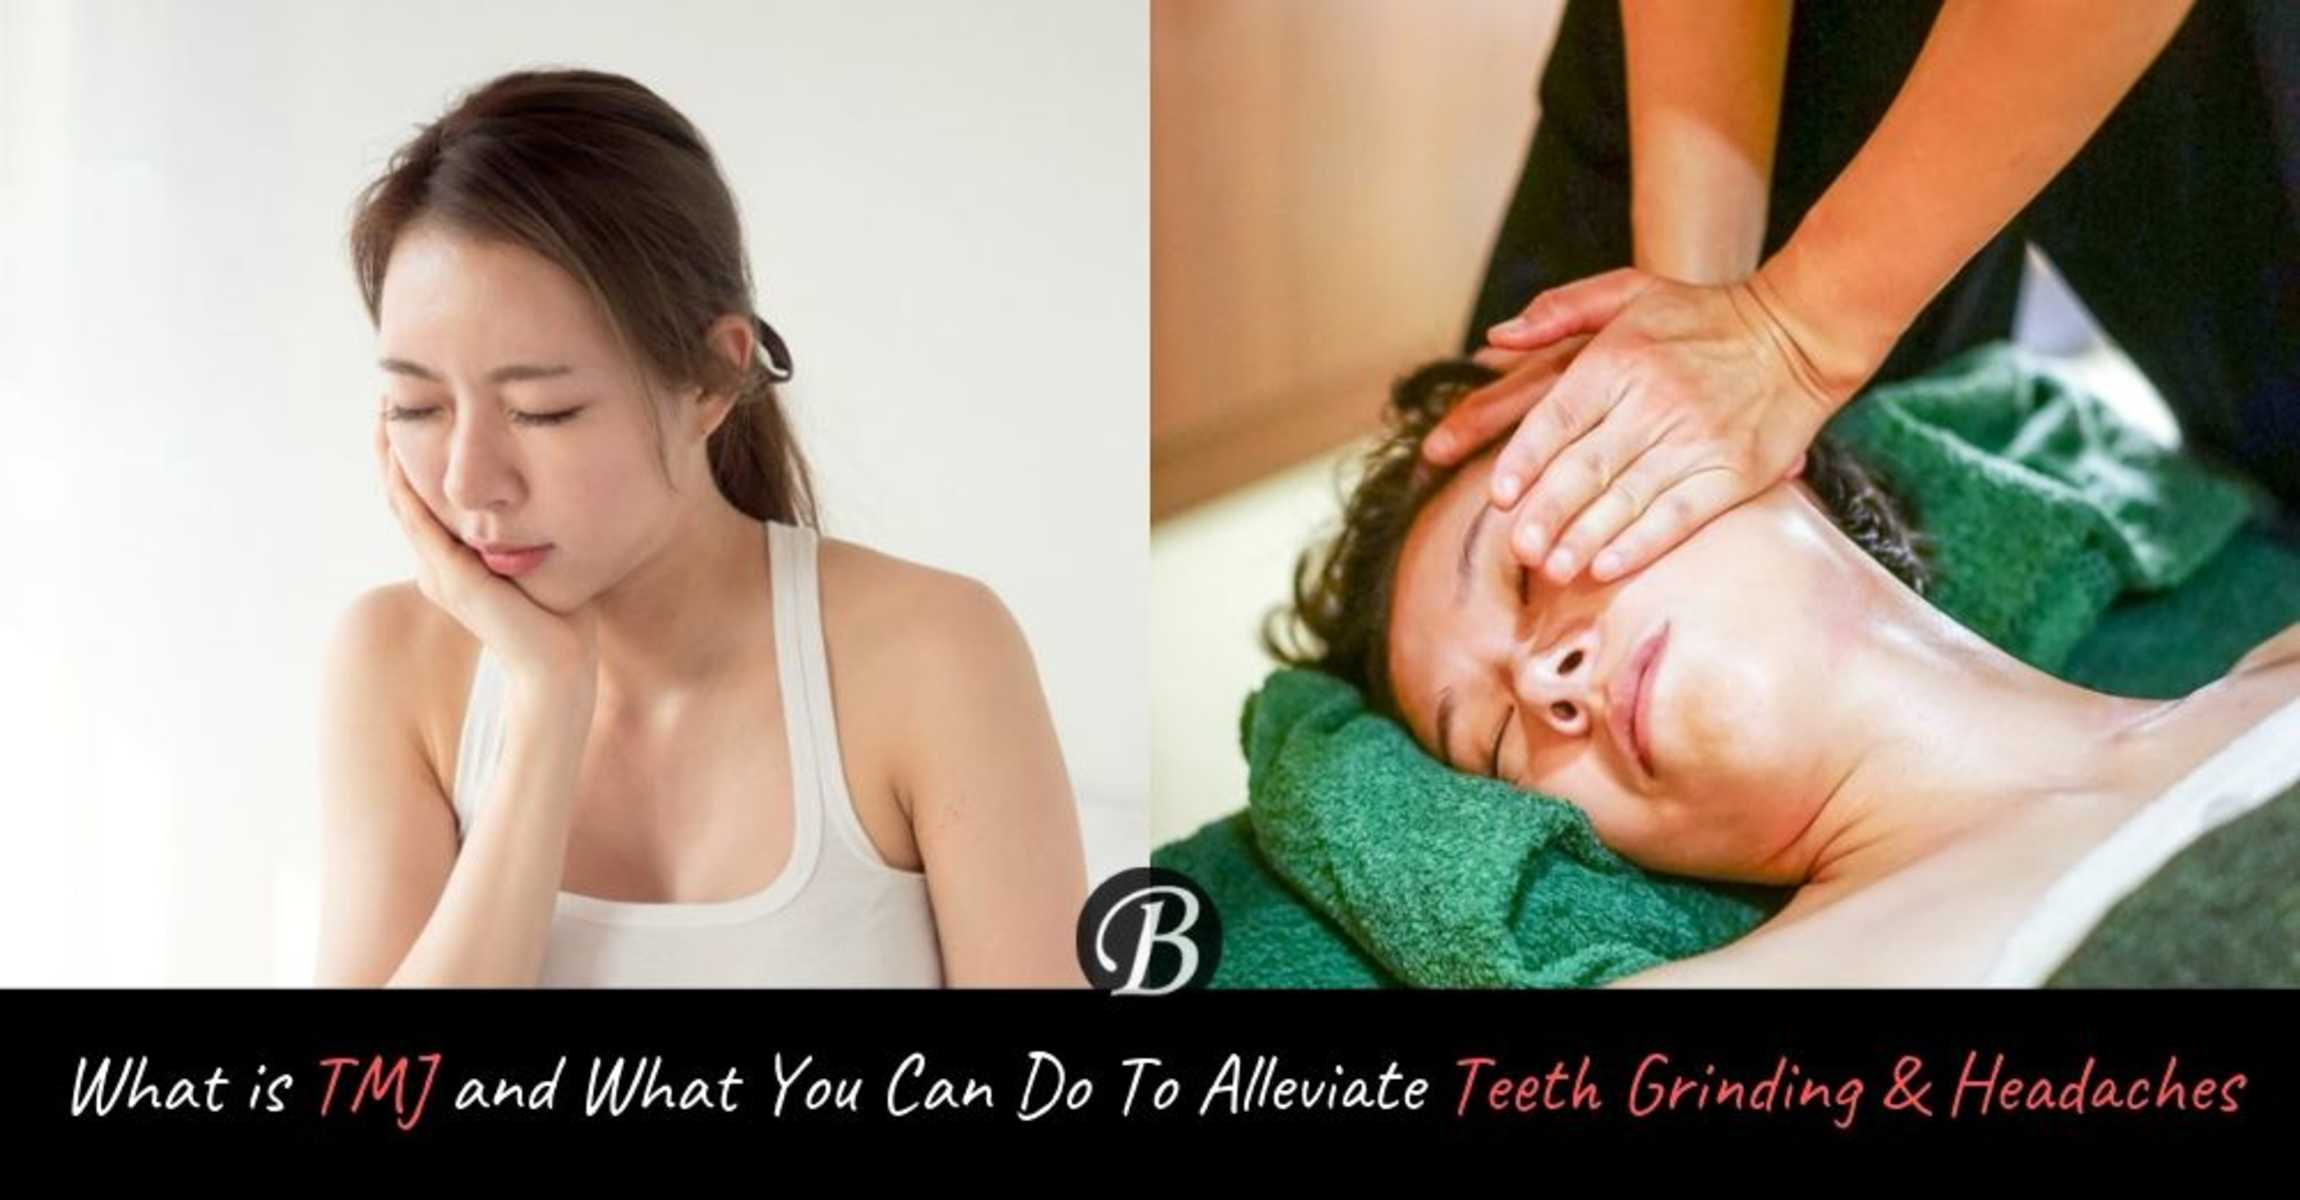 What Is Tmj Tmd And What You Can Do To Alleviate Teeth Grinding Headaches And Migraines